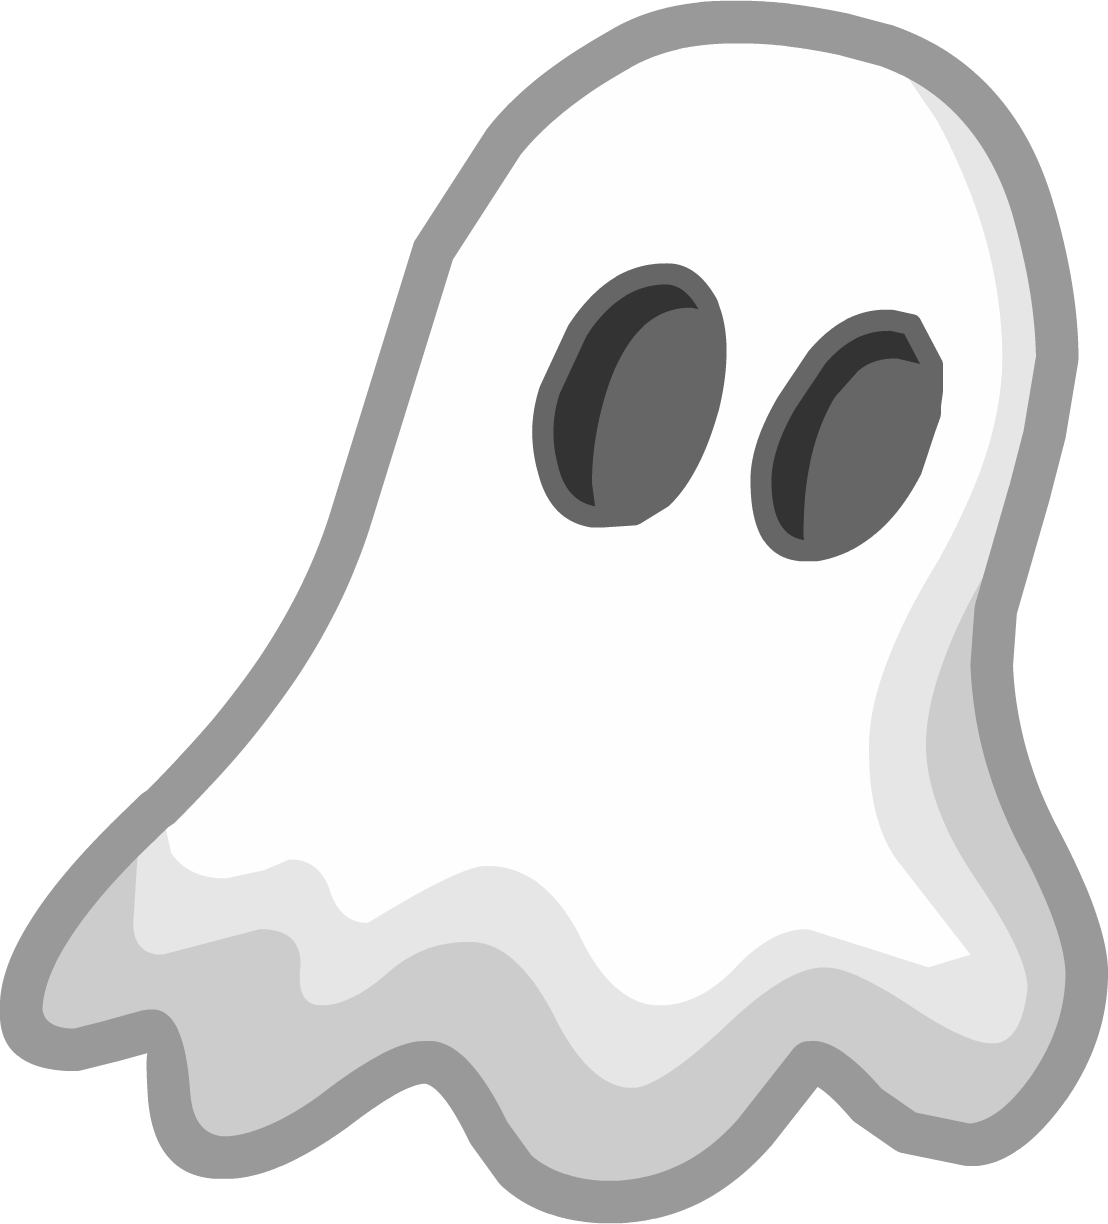 Emoji halloween ghost clipart graphic library download Image - Halloween 2013 Emoticons Ghost.png | Club Penguin Wiki ... graphic library download